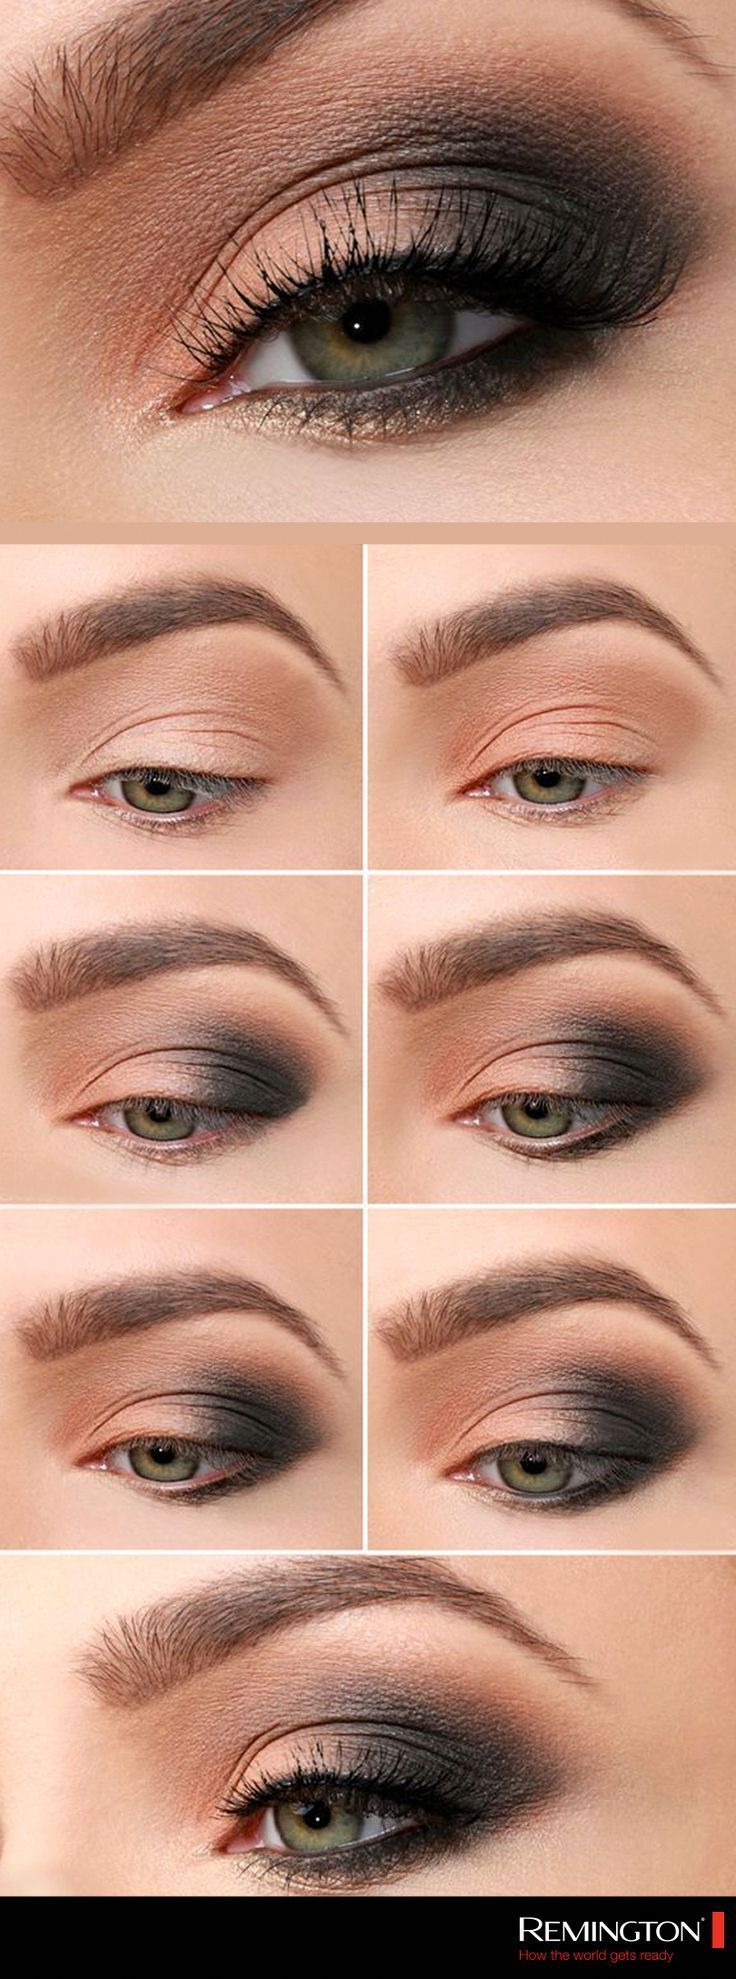 Das beste Smokey Eye Make-up #smokeyeyemakeup – #beste #das #Eye #Makeup – Alles